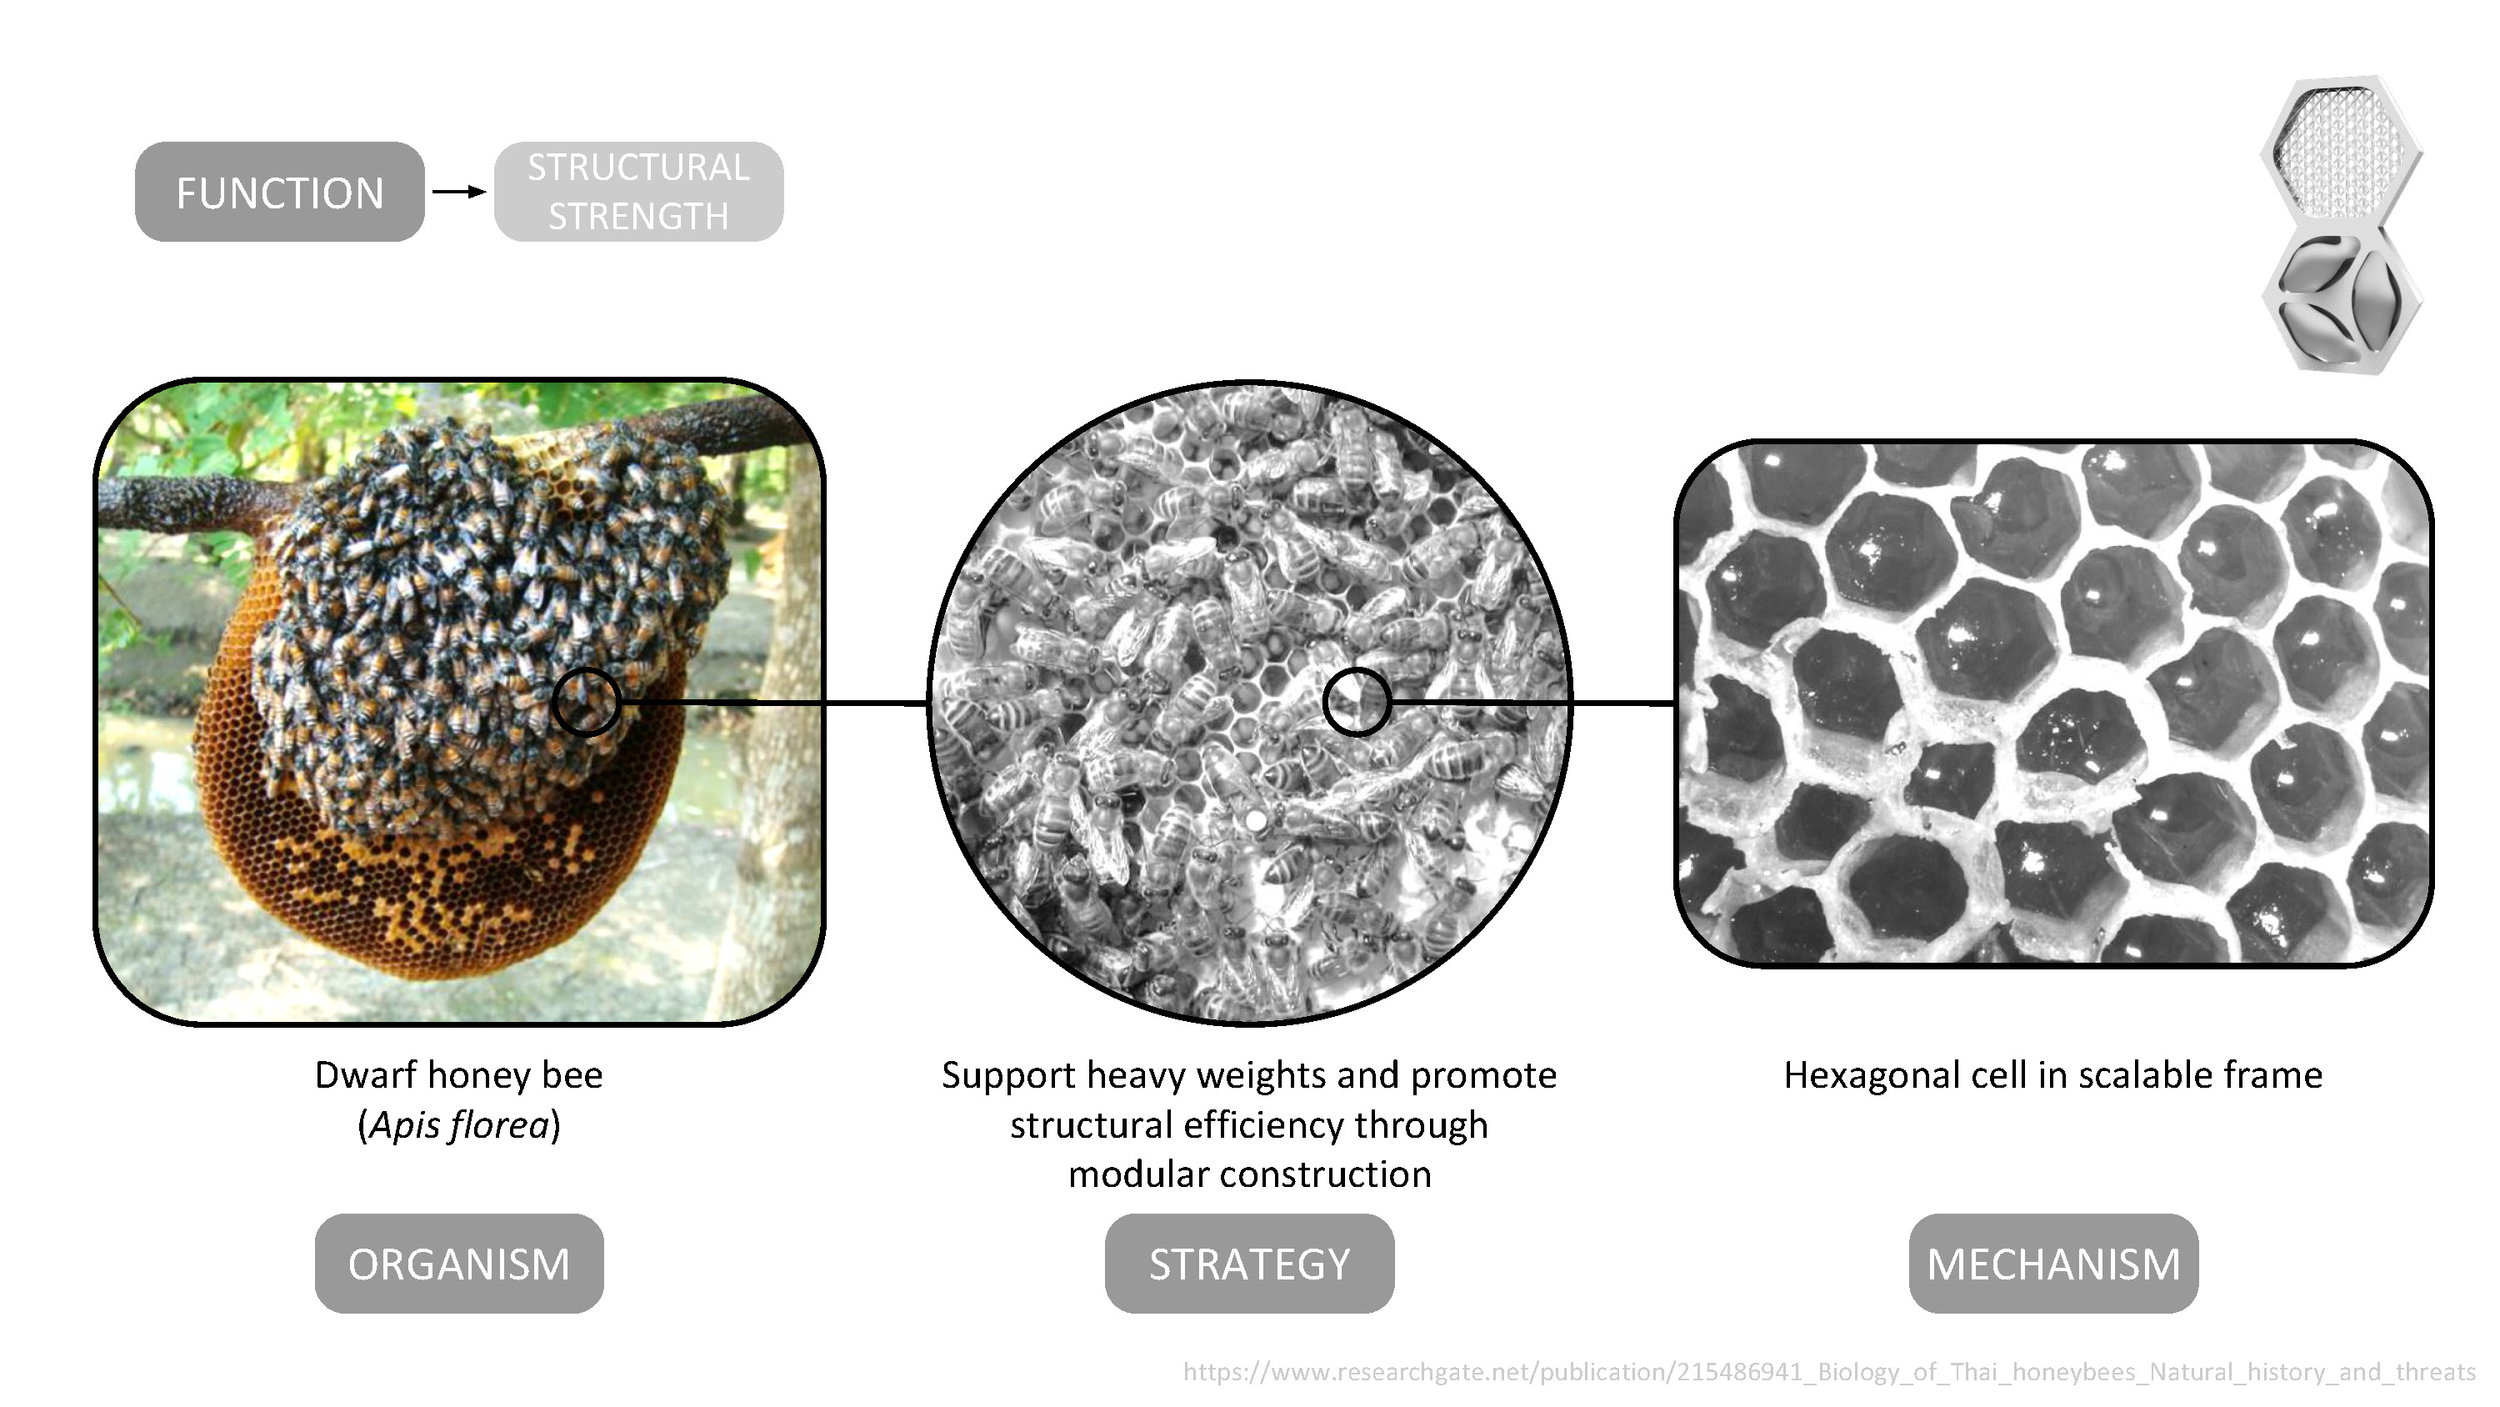 The AquaWeb emulates the hexagonal nest cell structure of the dwarf honey bee ( Apis florea ) to increase the strength of the modular system and reduce the amount of material needed to produce a robust and efficient structure.